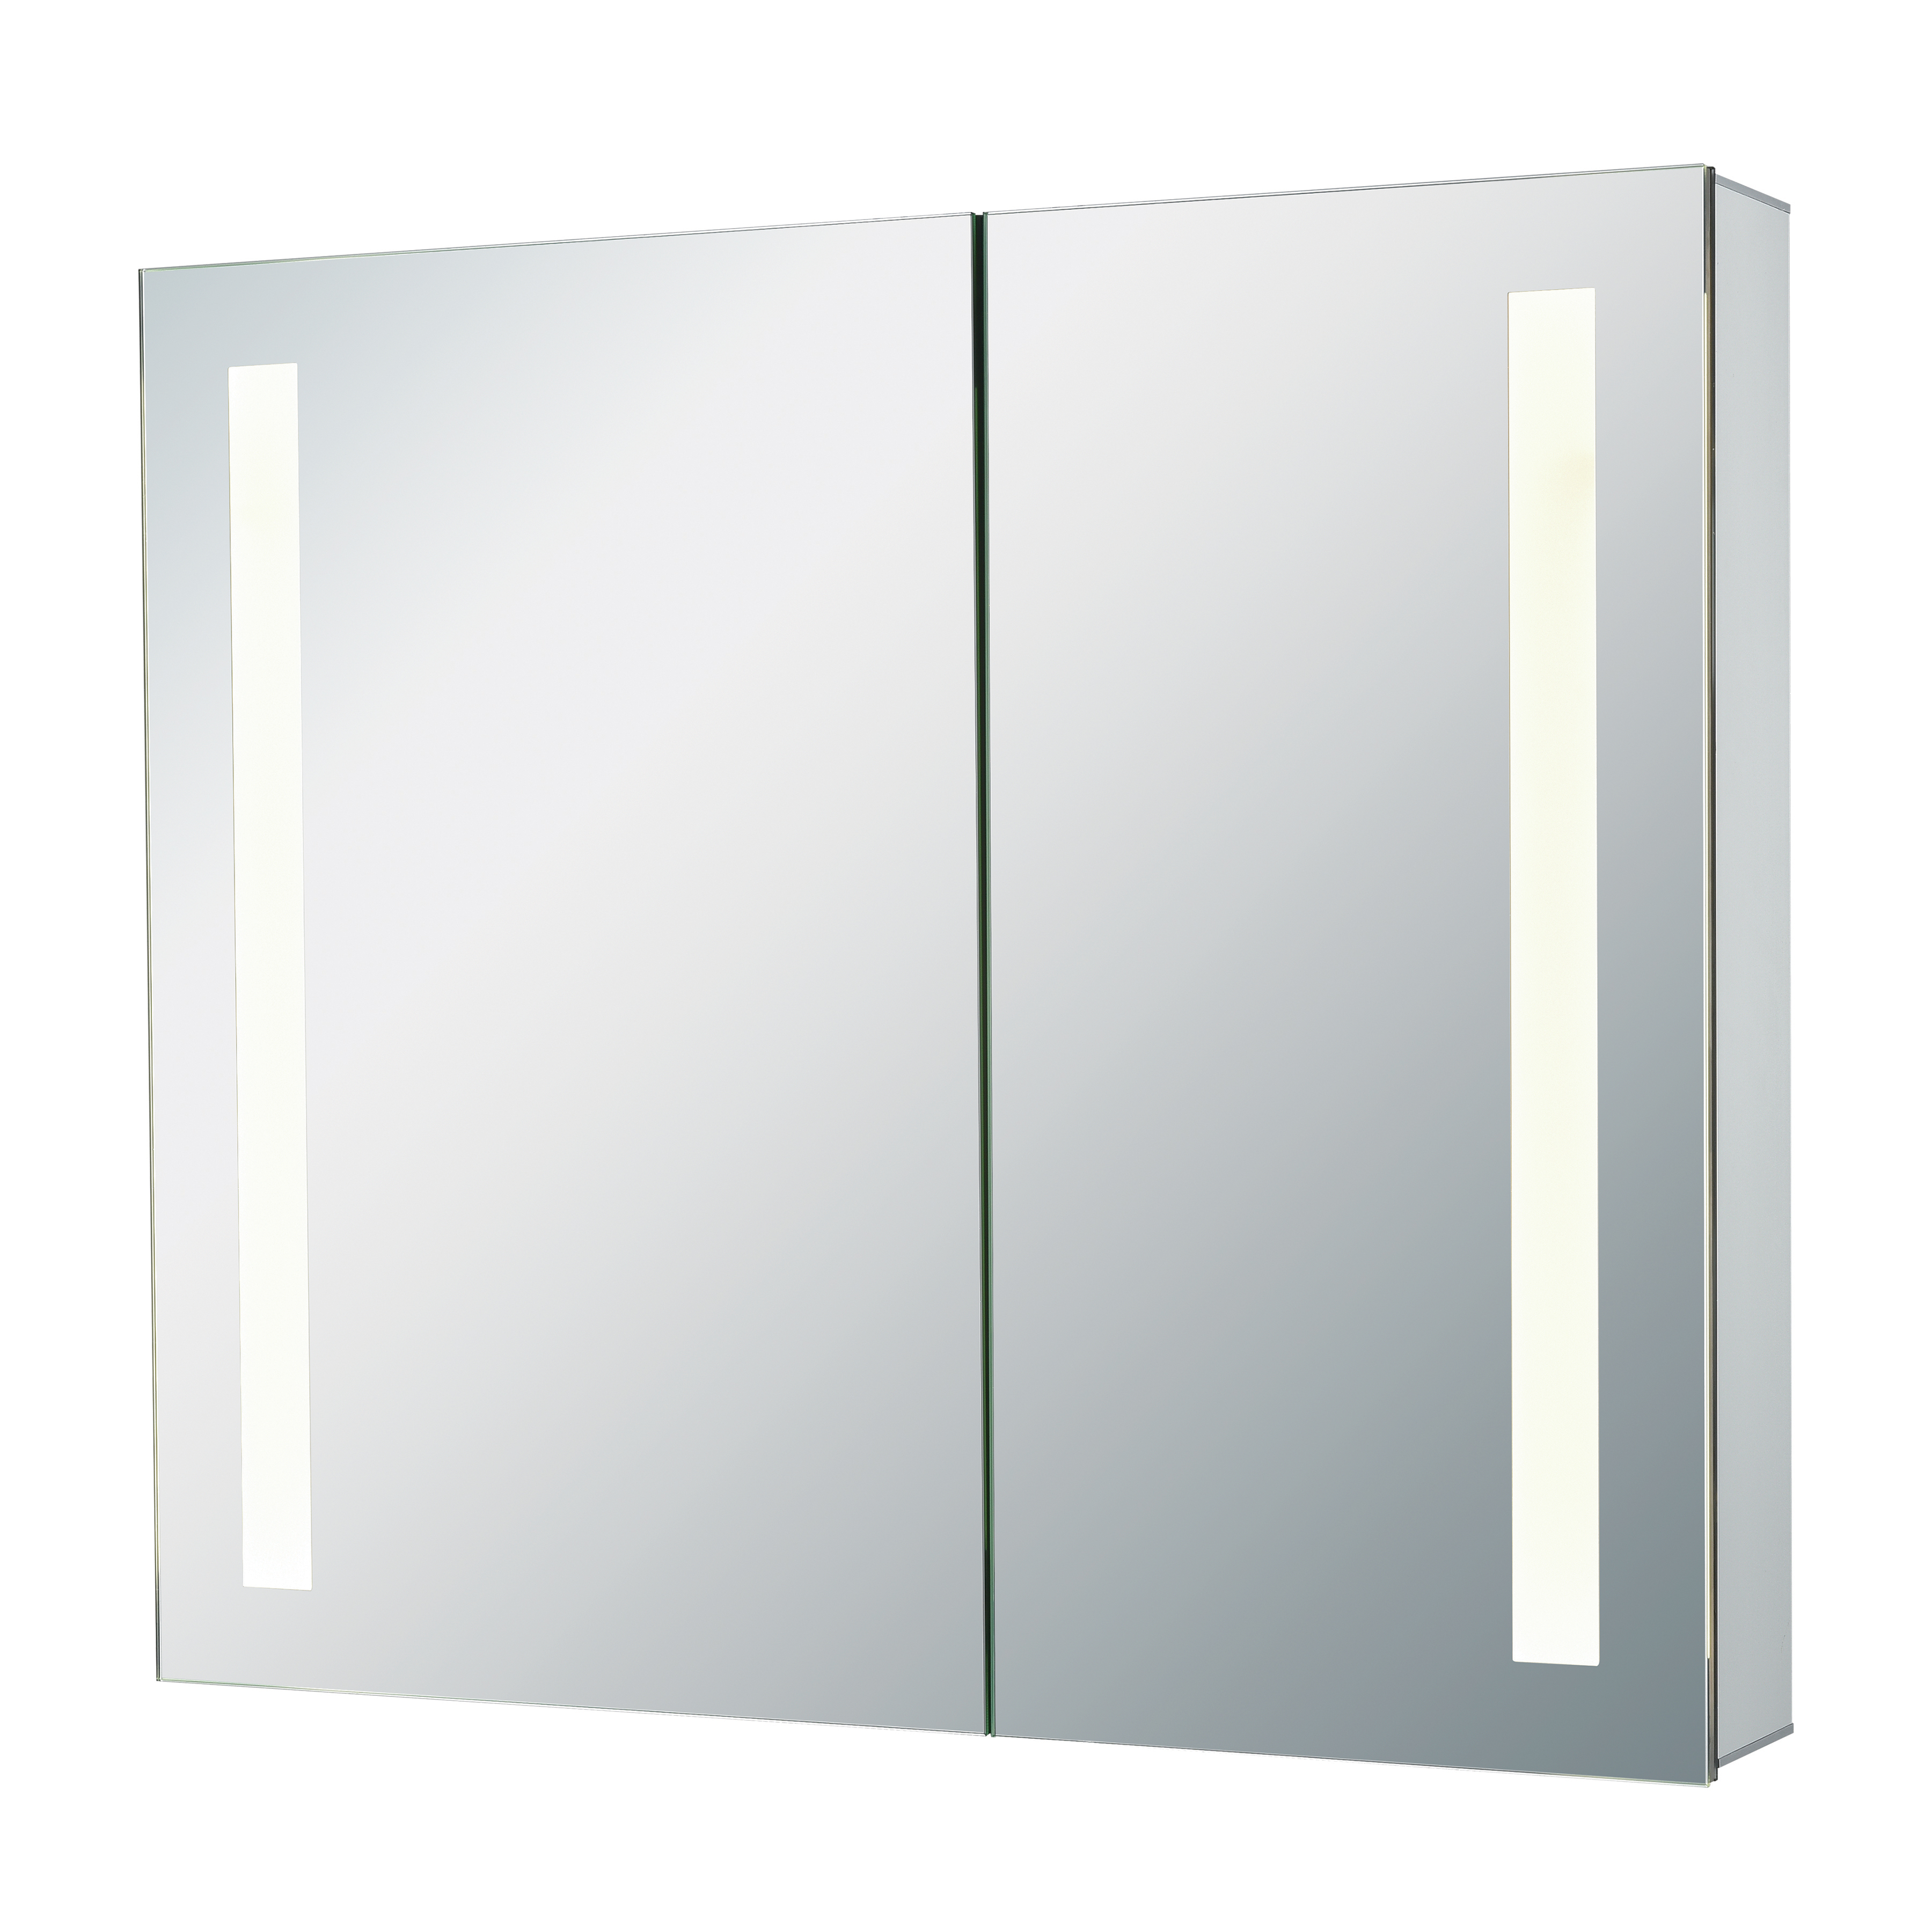 32X27-Inch LED Mirrored Medicine Cabinet | Elk Home